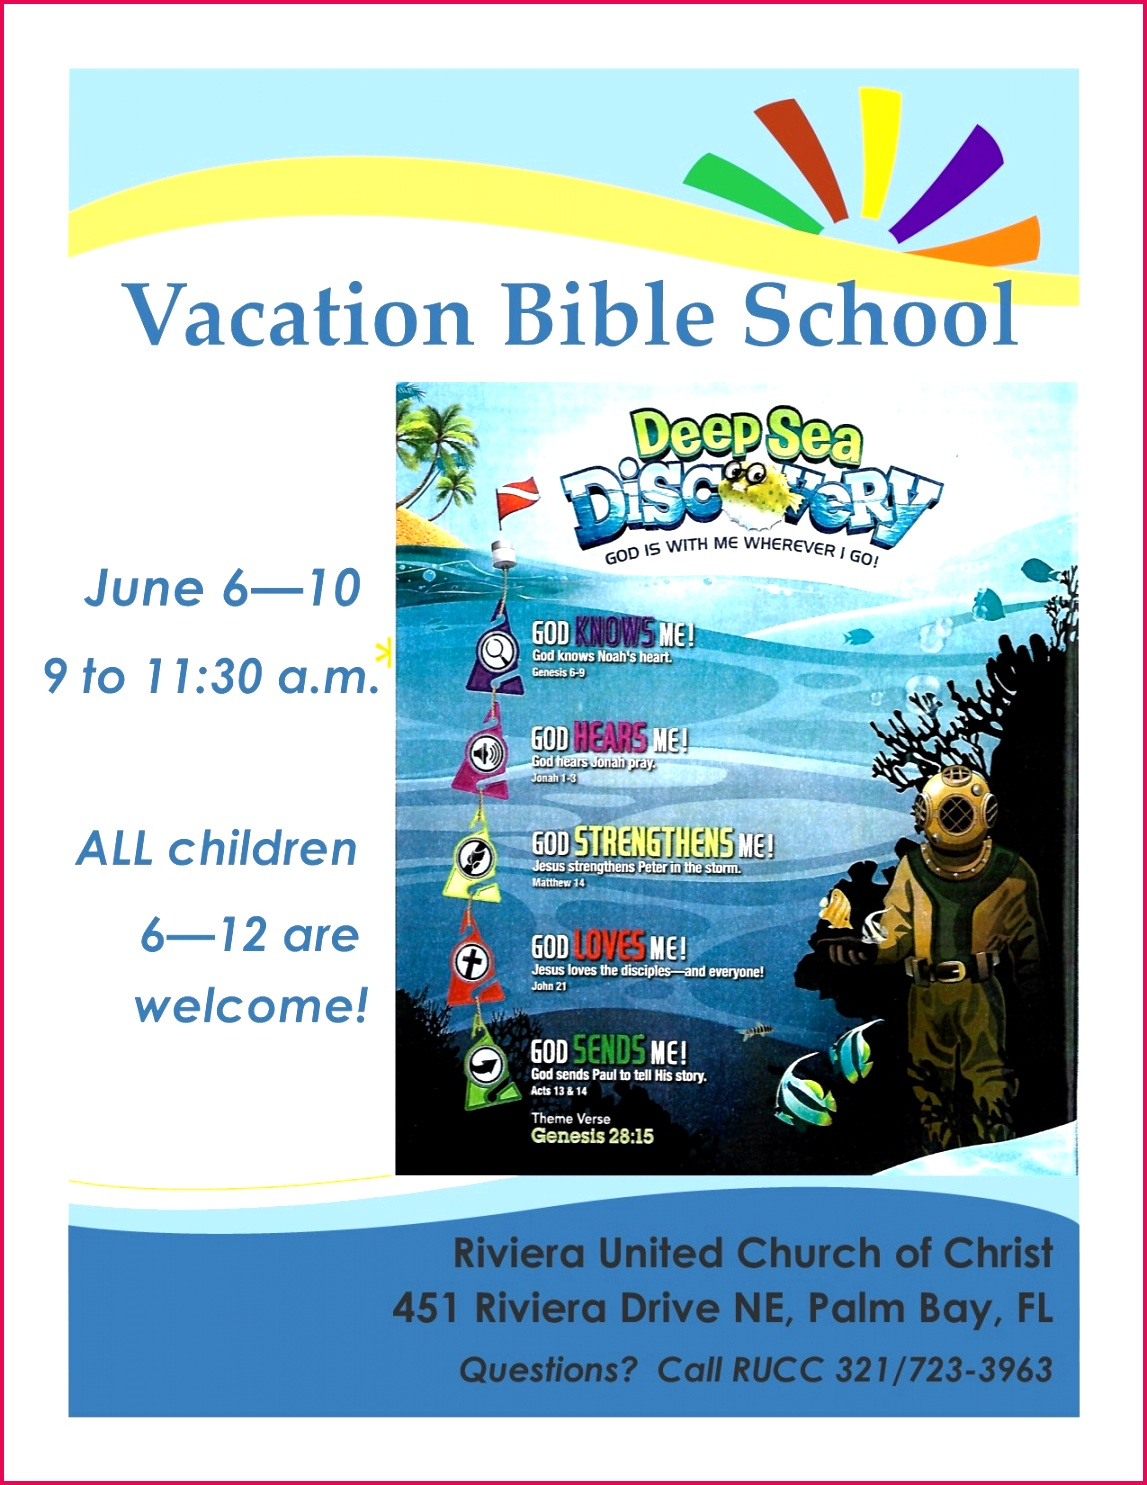 vacation bible school flyer template awesome vacation bible school flyer templates lovely vbs flyer of vacation bible school flyer template